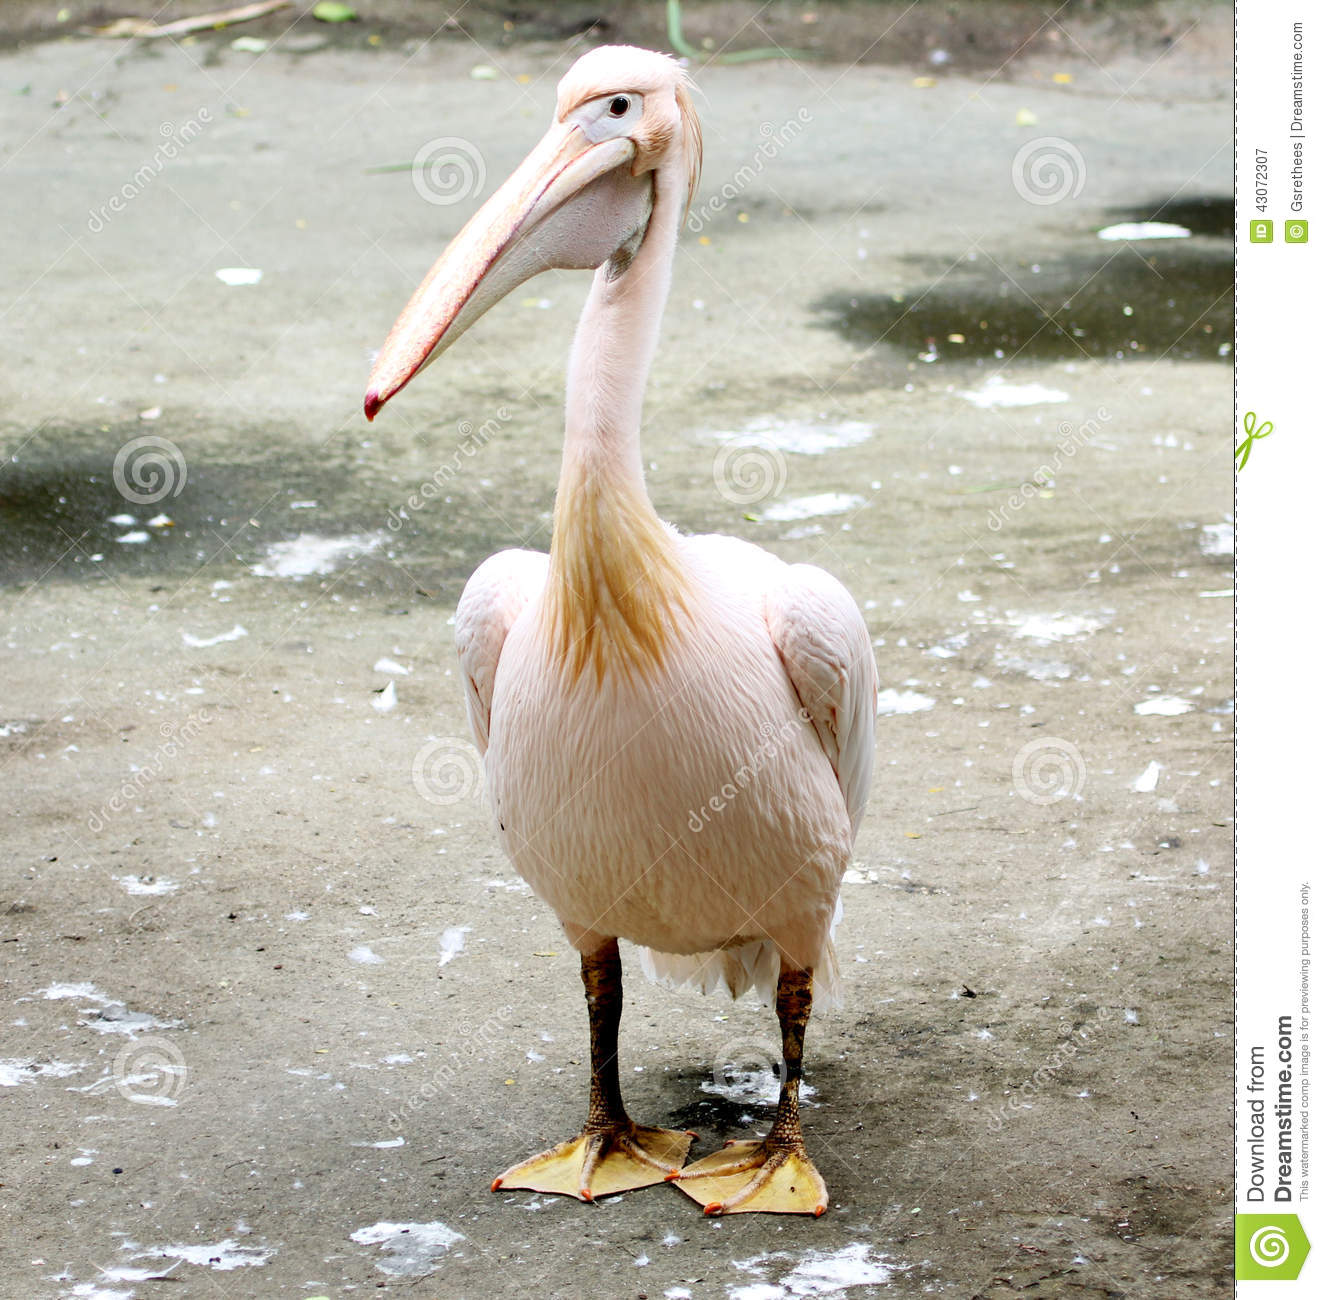 Rosy Pelican Stock Photo.